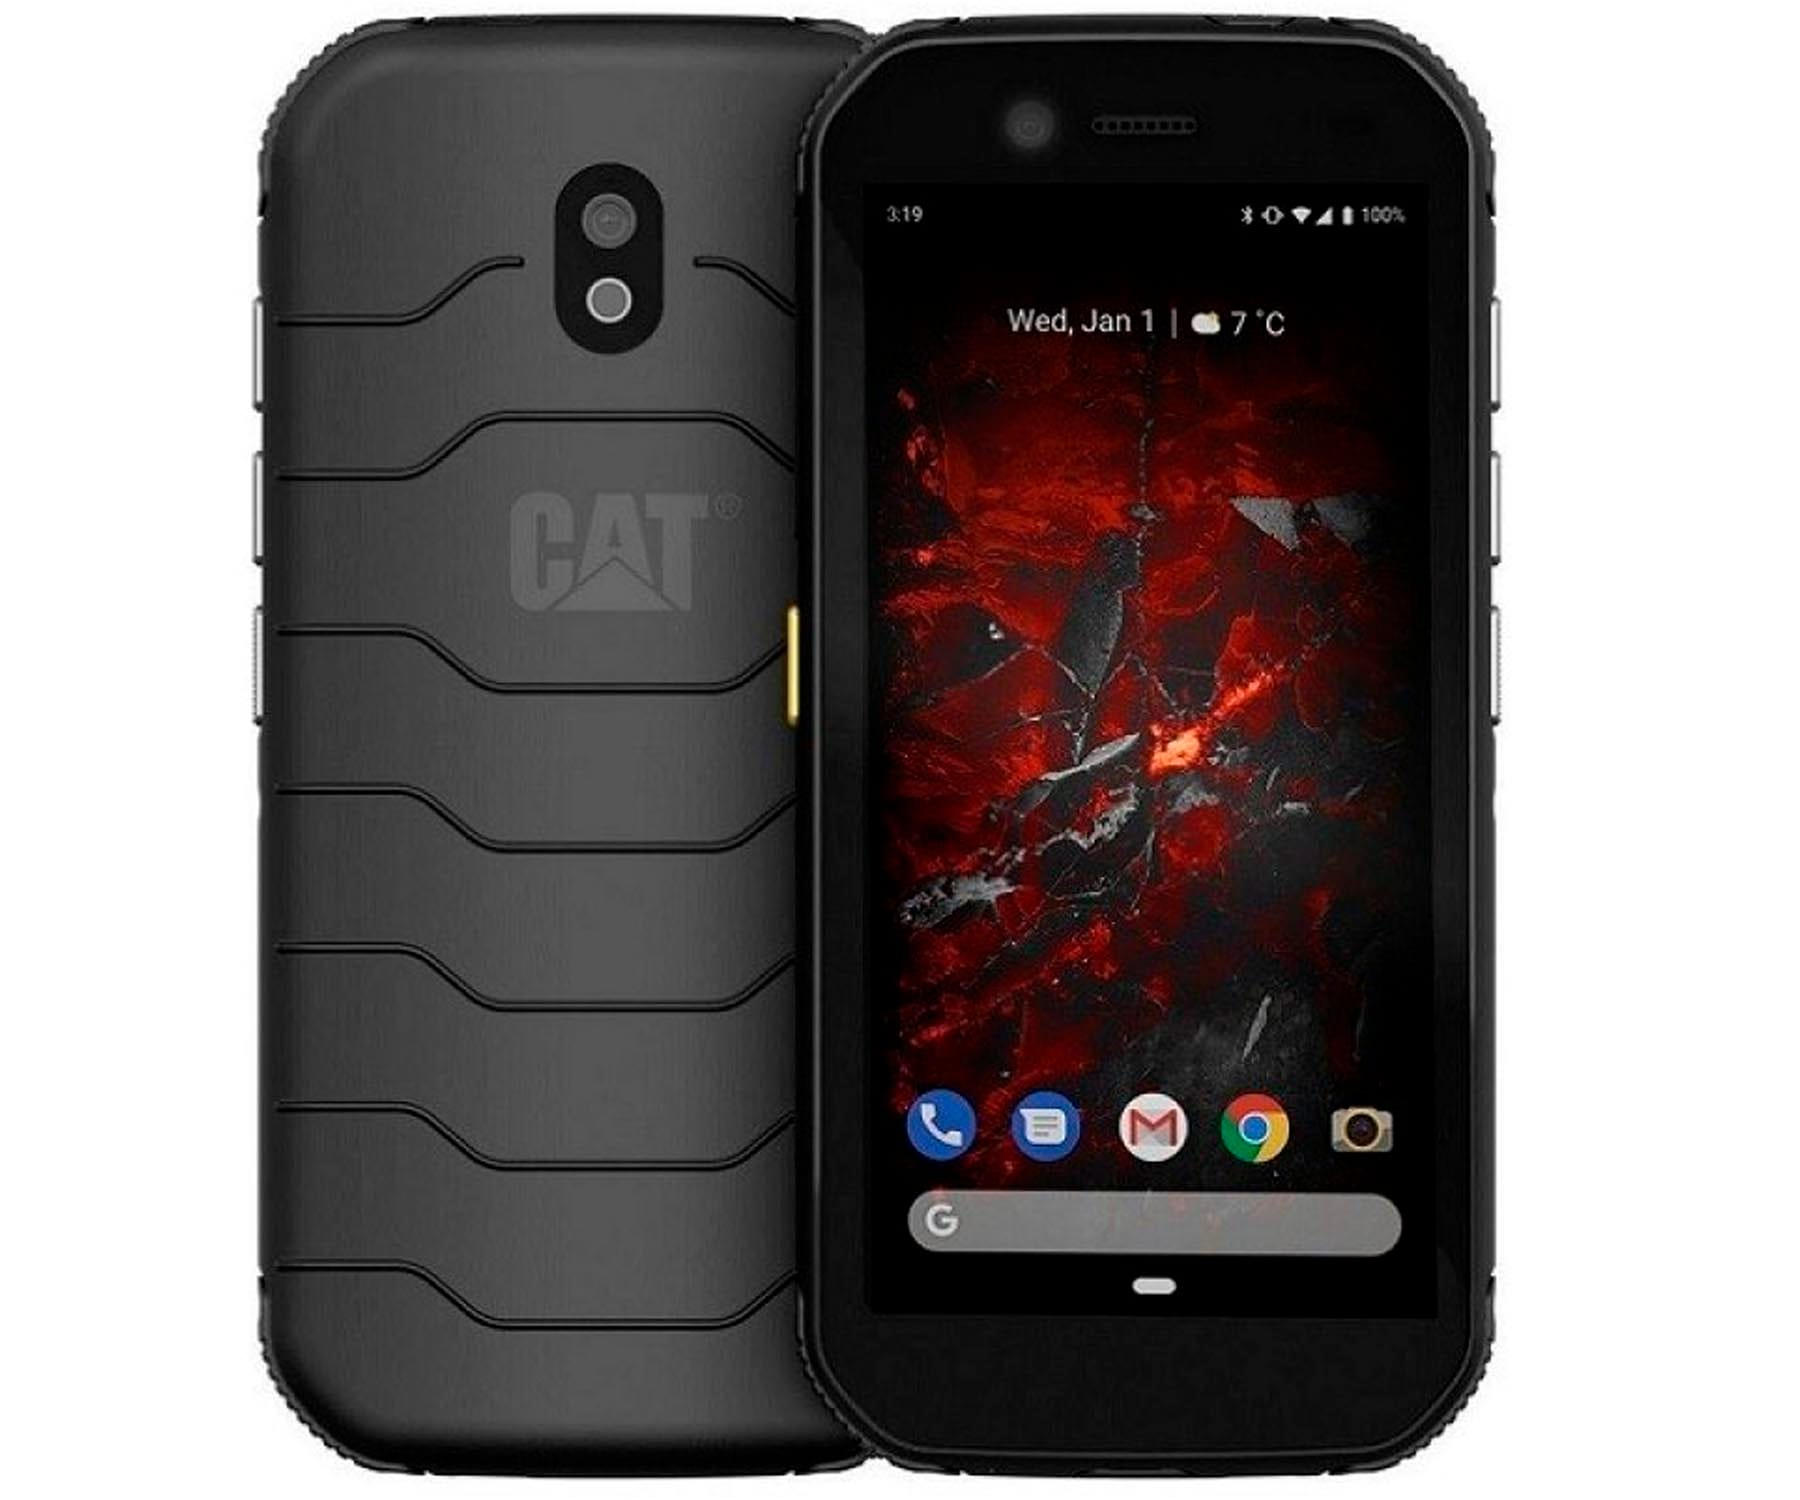 CAT S42 NEGRO MÓVIL RESISTENTE 4G DUAL SIM 5.5'' HD+ QUADCORE 32GB 3GB RAM CAM 13MP SELFIES 5MP